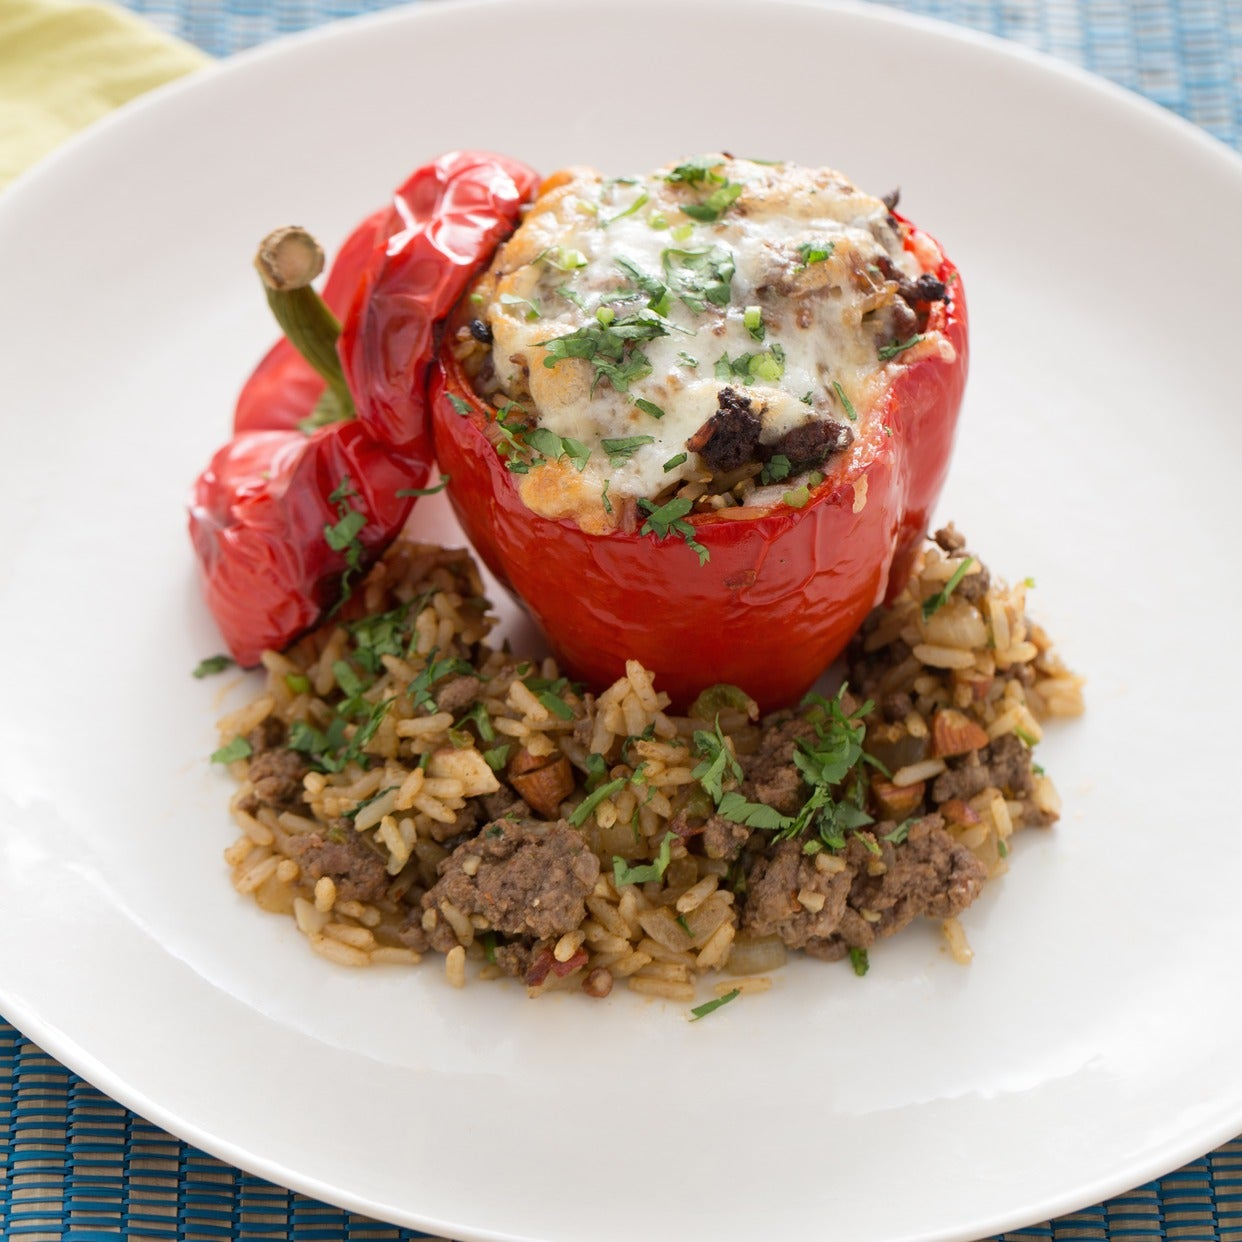 Southwestern-Style Beef-Stuffed Peppers with Chipotle Pepper & Monterey Jack Cheese